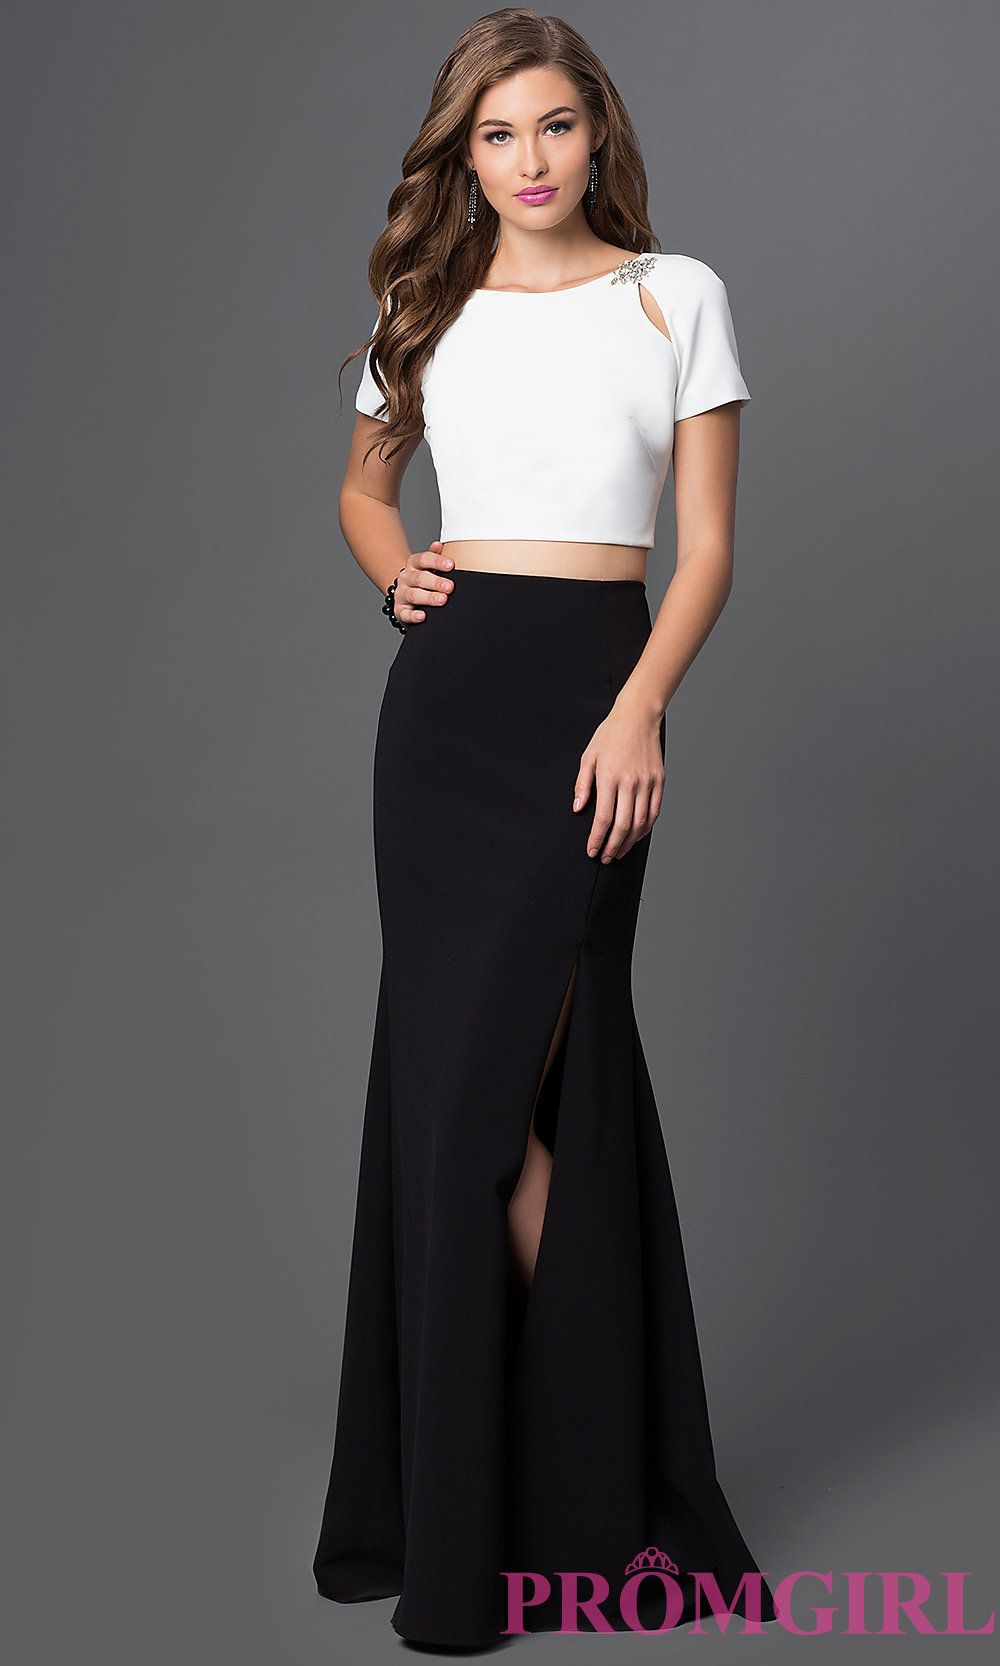 Long Two Piece Short Sleeve Dress By Mignon